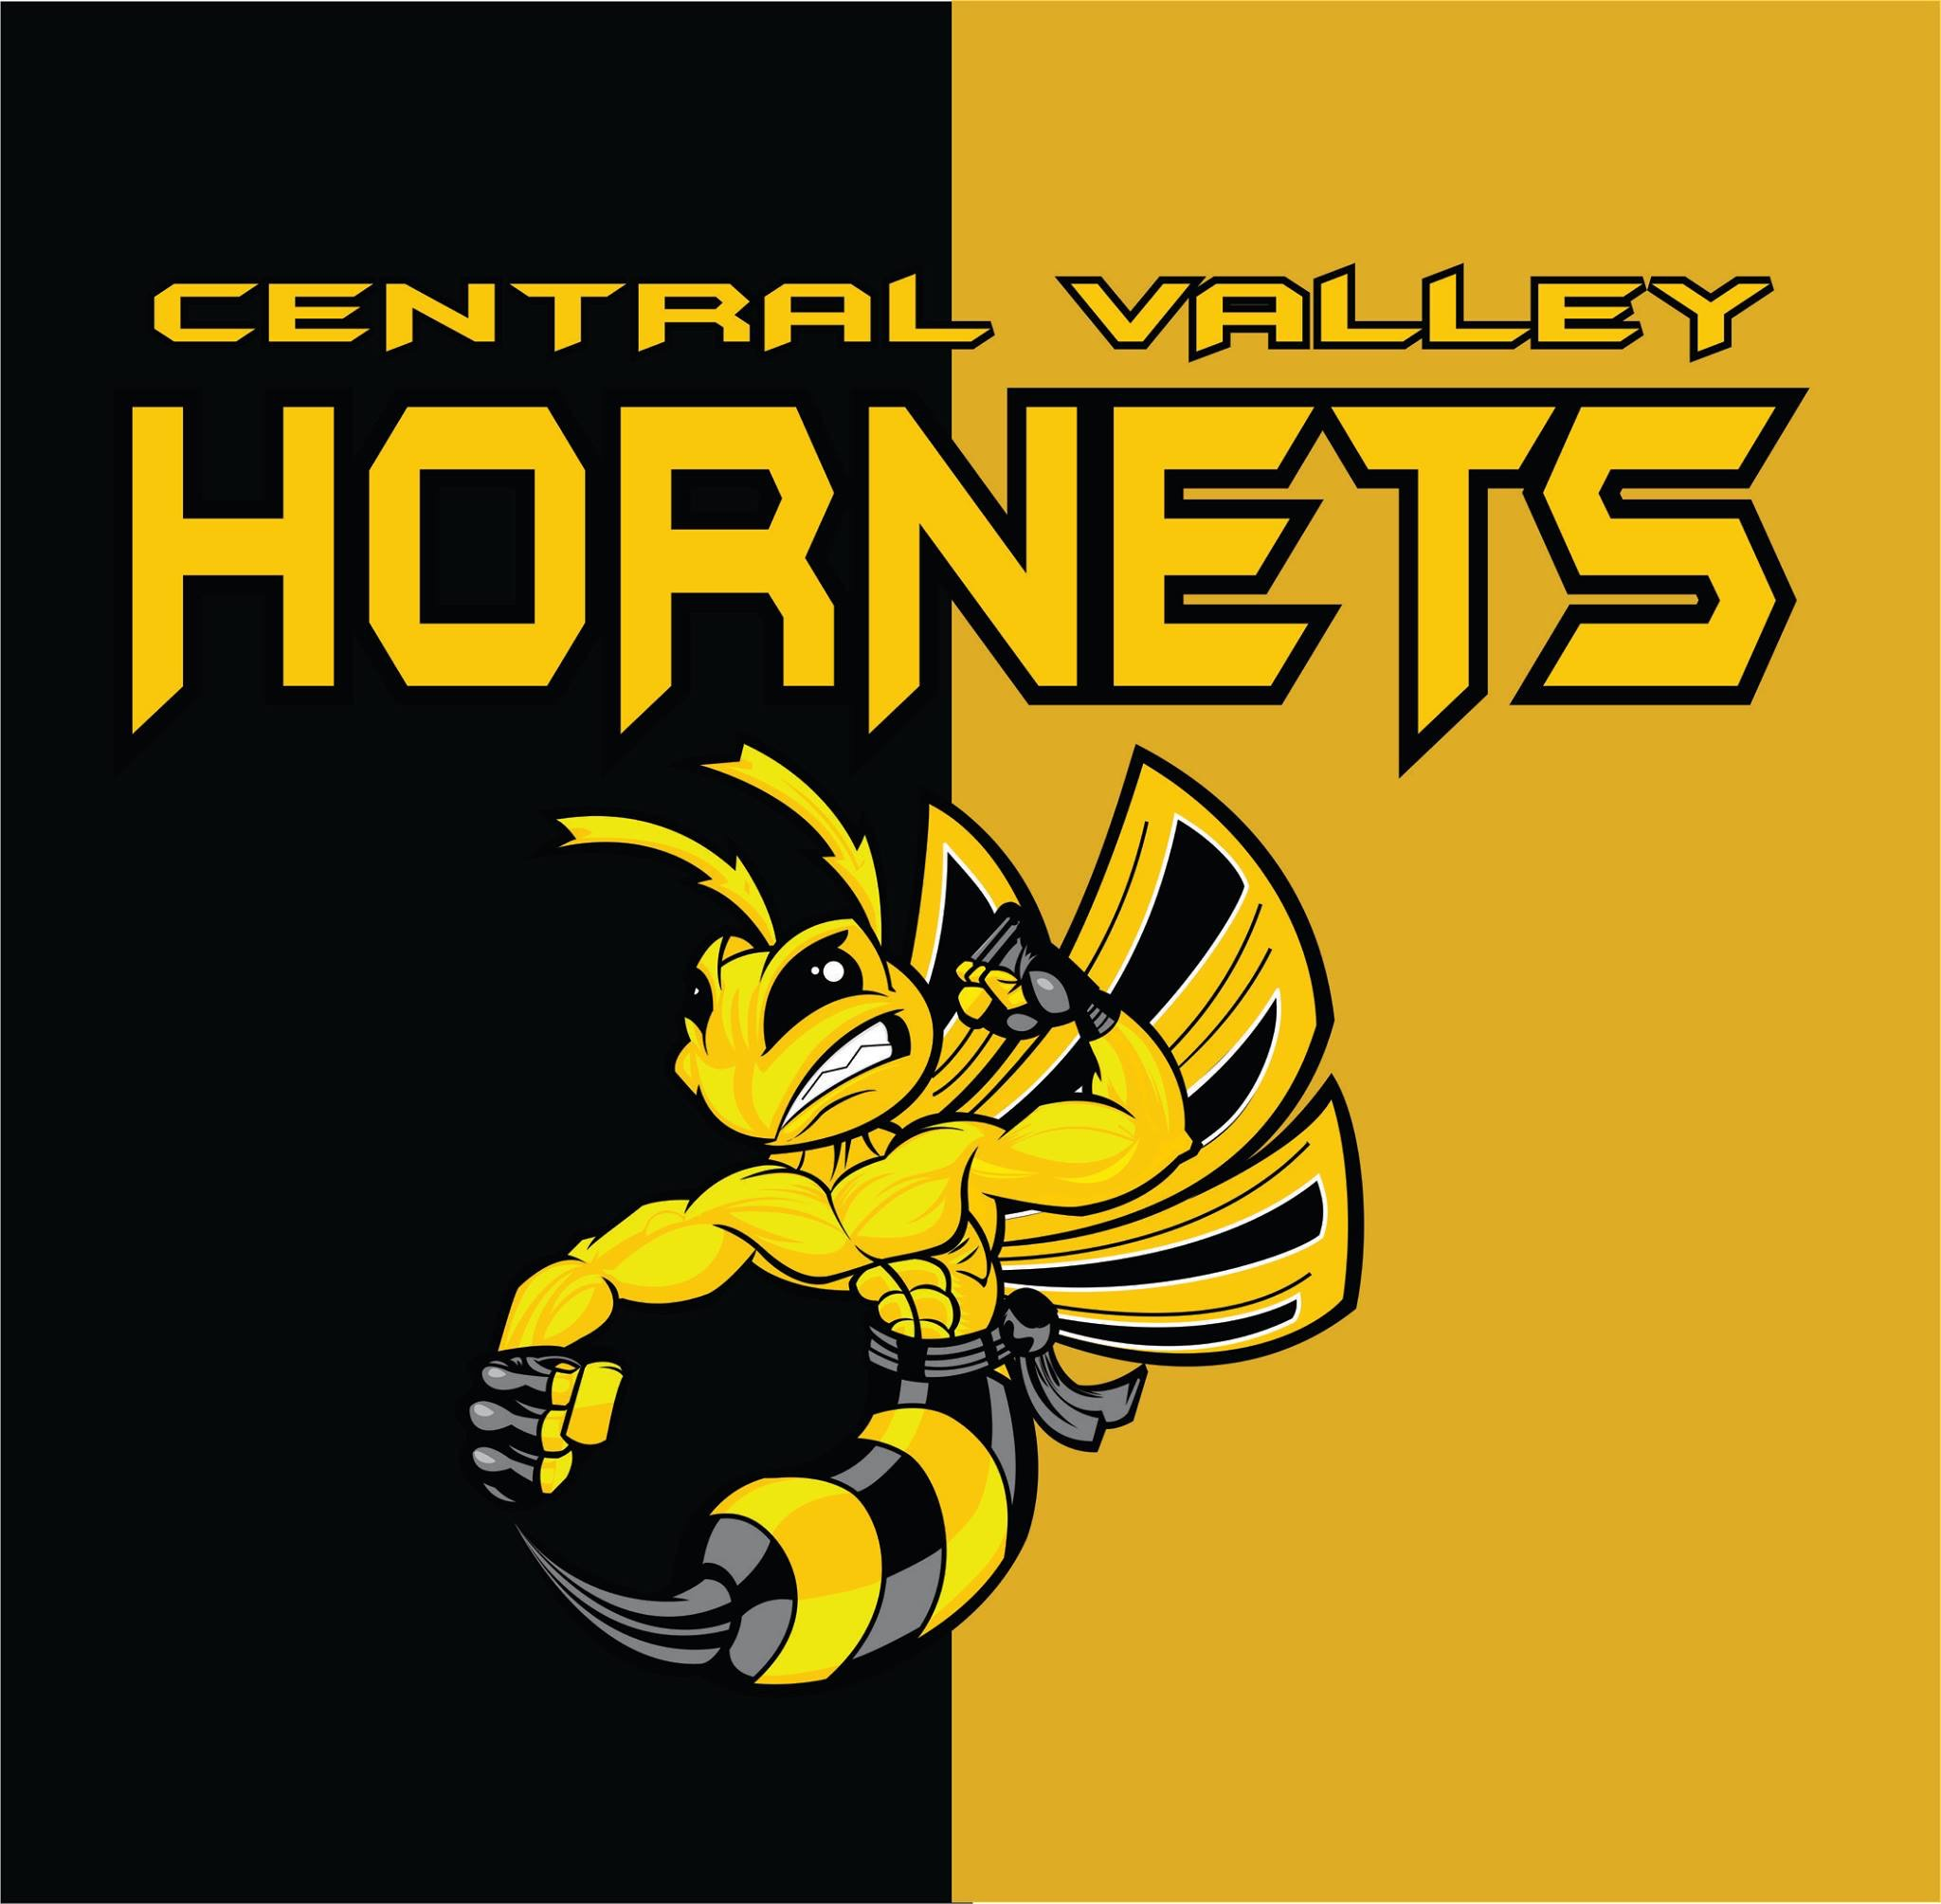 Central Valley Hornets